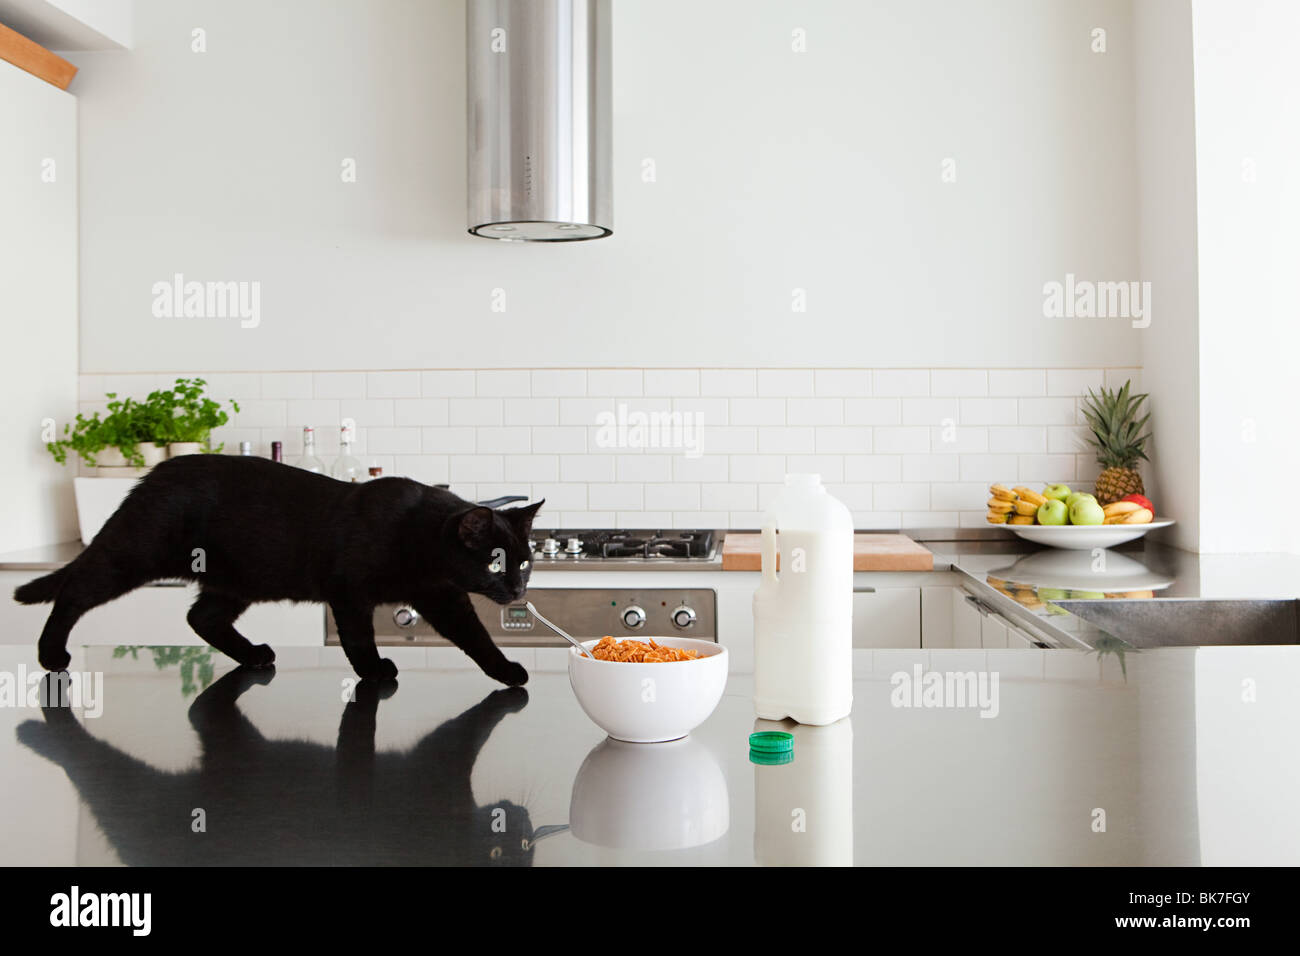 Black cat on counter with milk and cereal - Stock Image